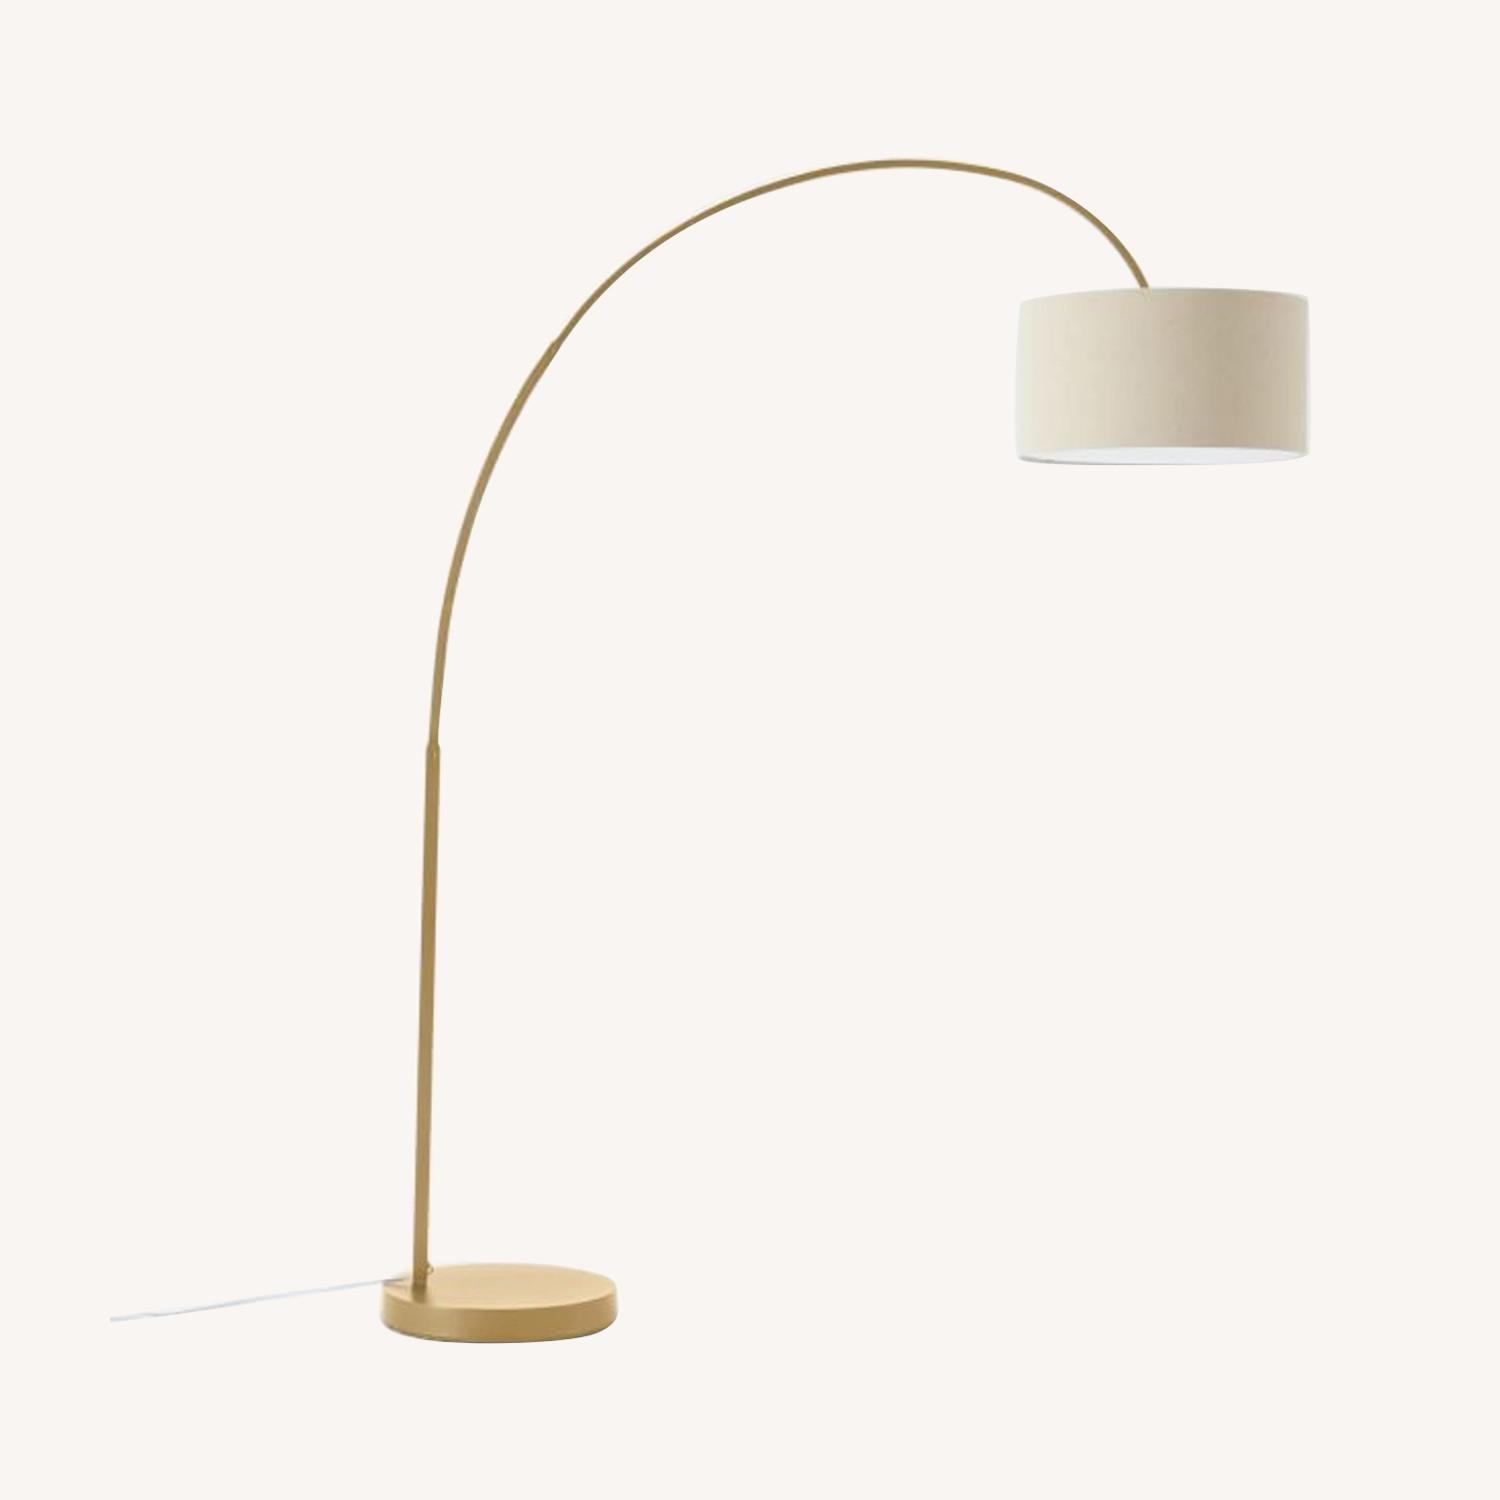 West Elm Cfl Overarching Floor Lamp - image-0